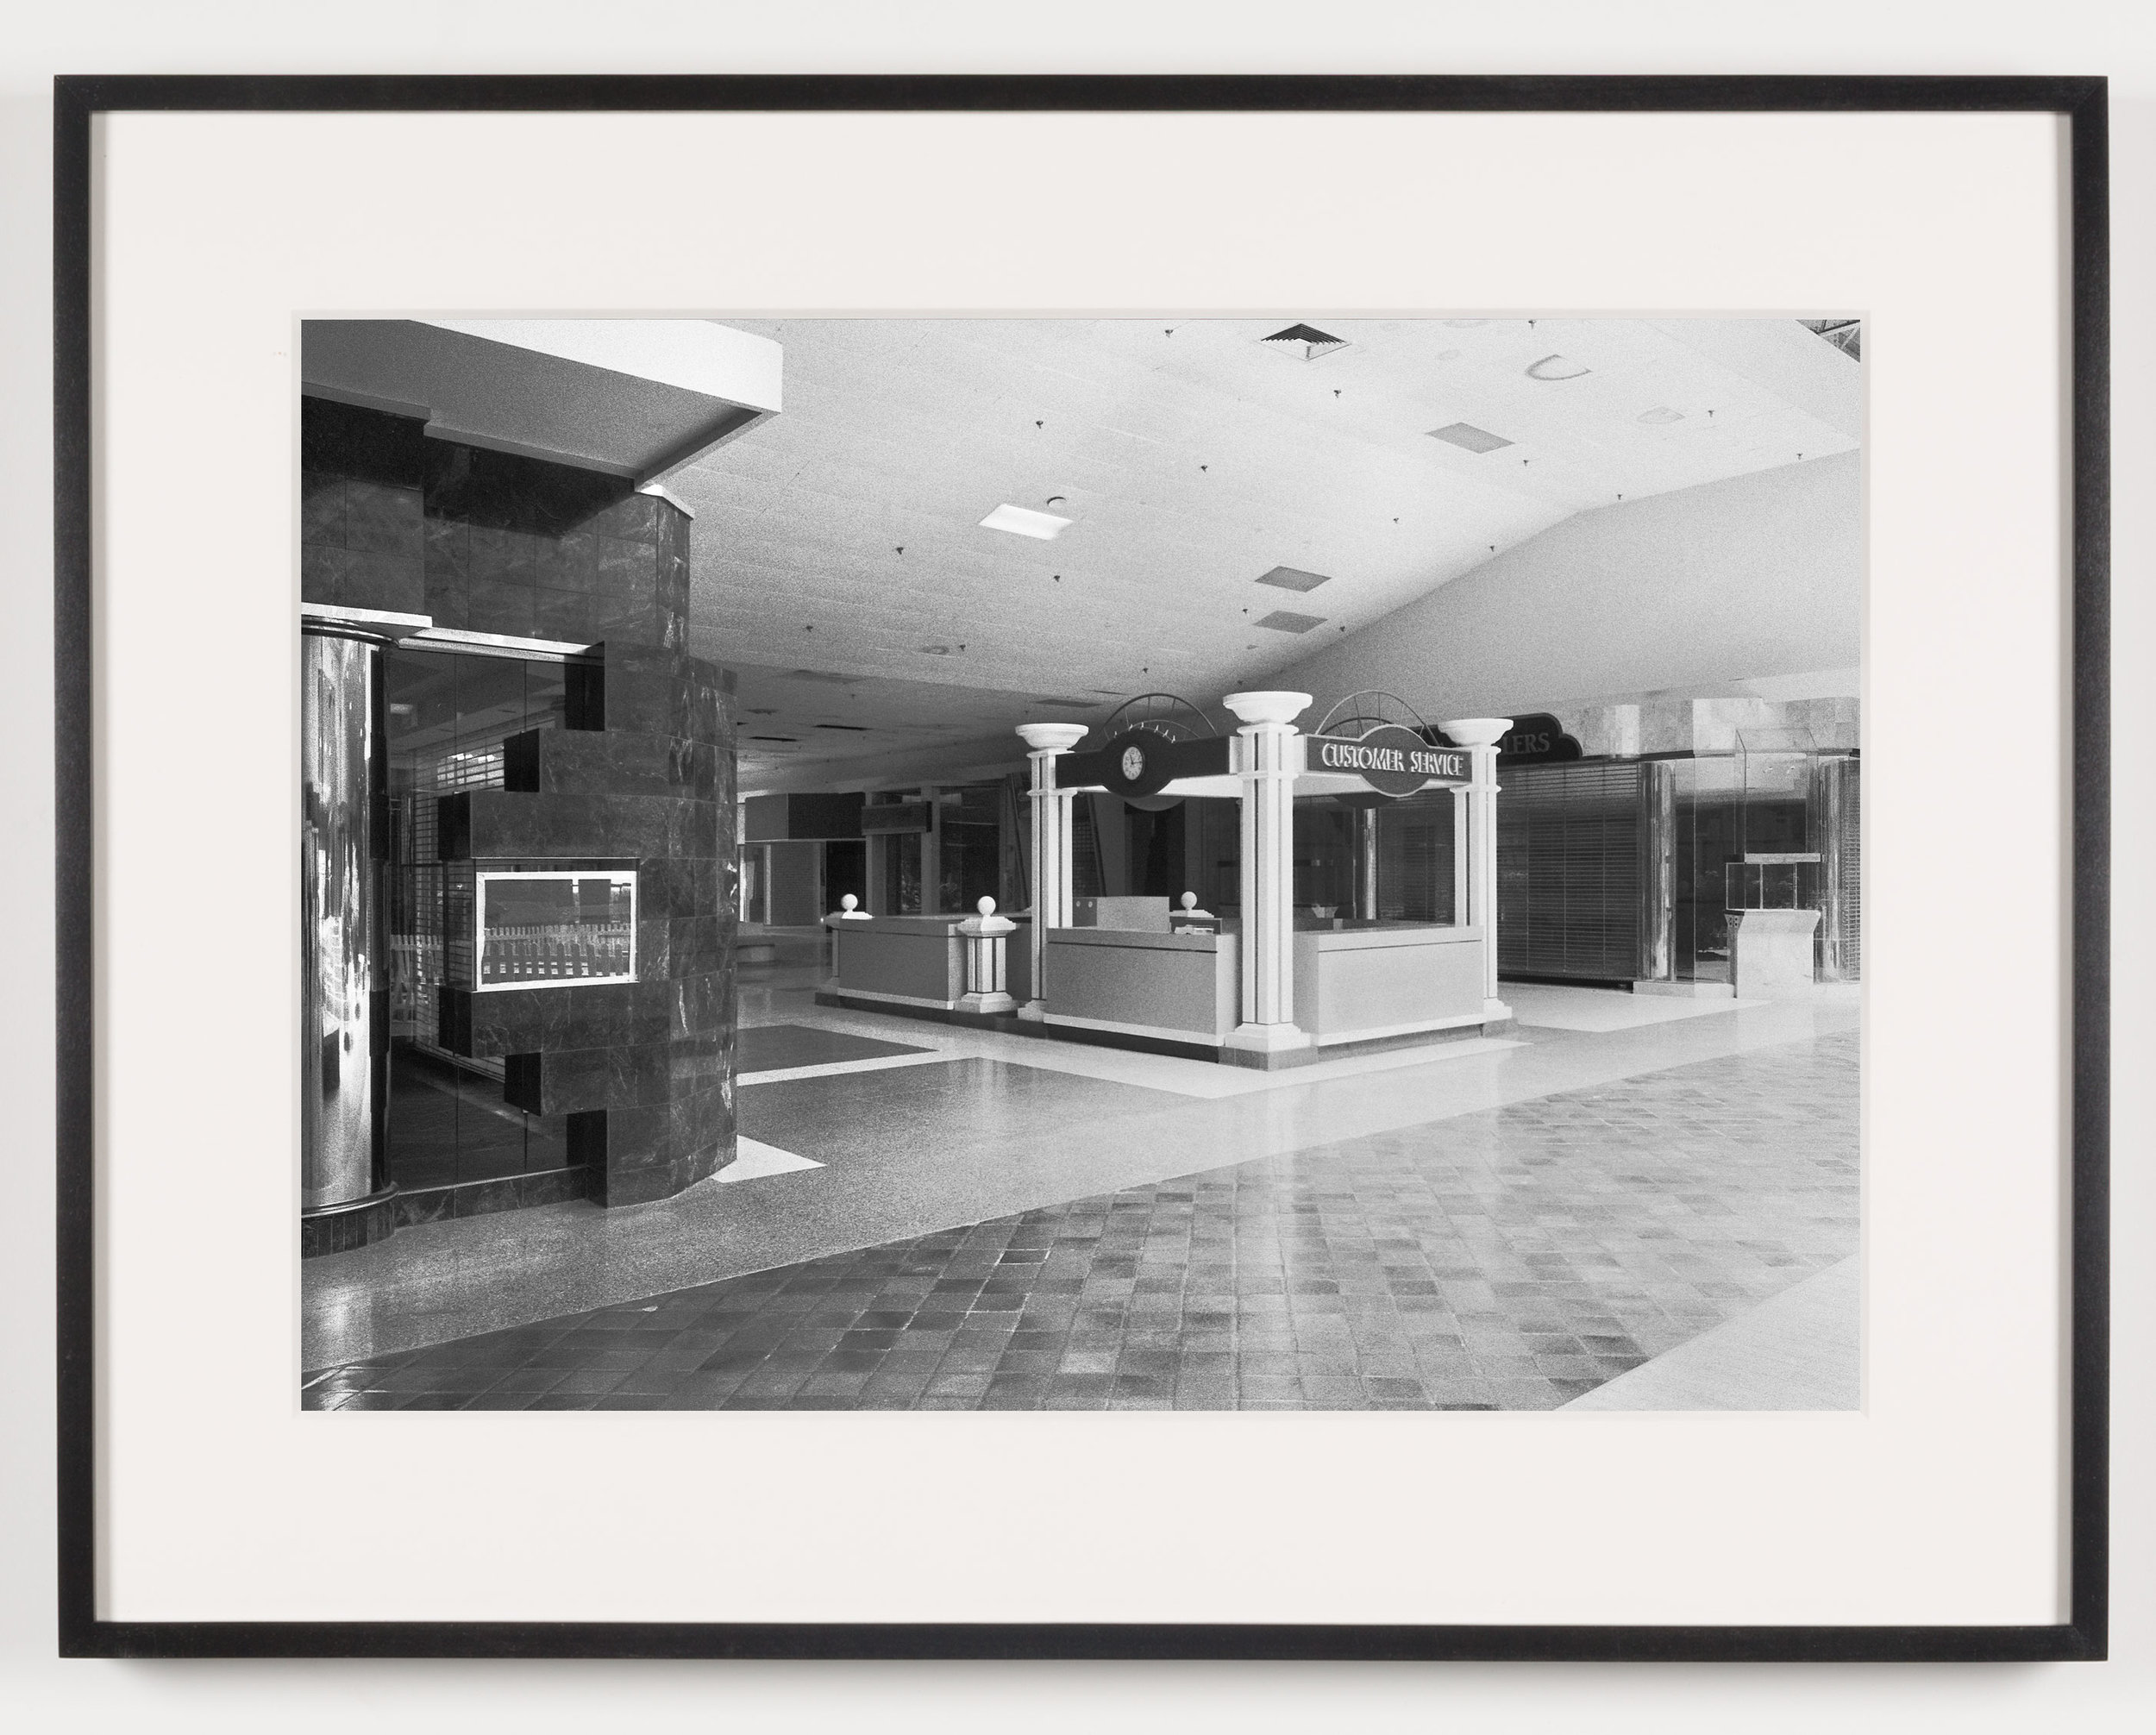 Rolling Acres Mall (View of Customer Service Kiosk), Akron, OH, Est. 1975   2011  Epson Ultrachrome K3 archival ink jet print on Hahnemühle Photo Rag paper  21 5/8 x 28 1/8 inches   American Passages, 2001–2011    A Diagram of Forces, 2011